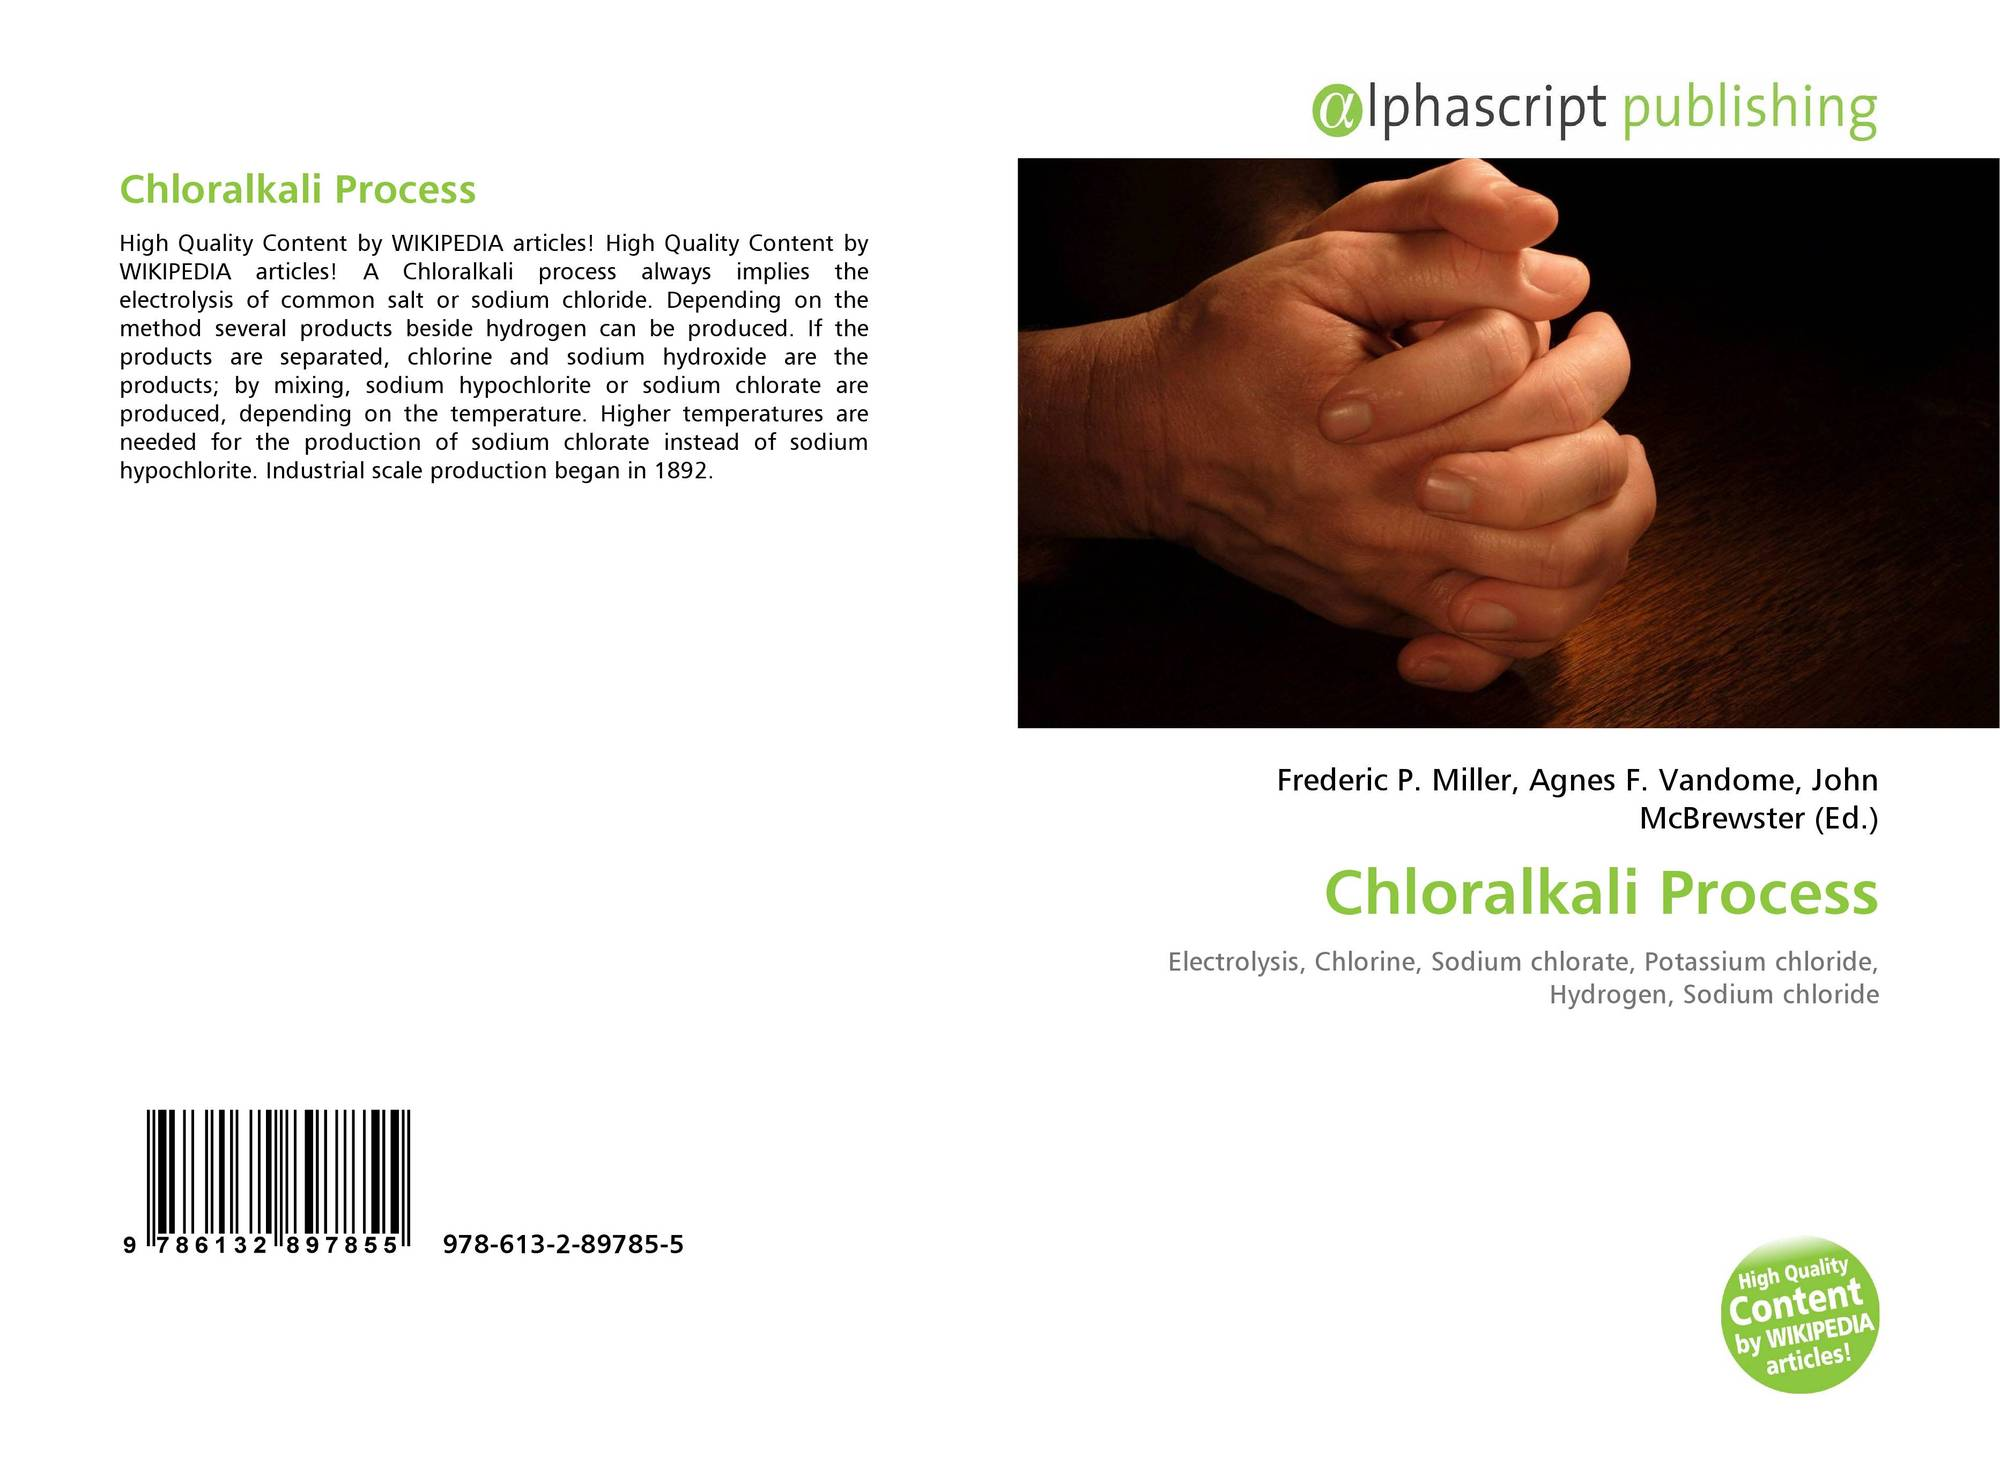 Chloralkali Process, 978-613-2-89785-5, 6132897852